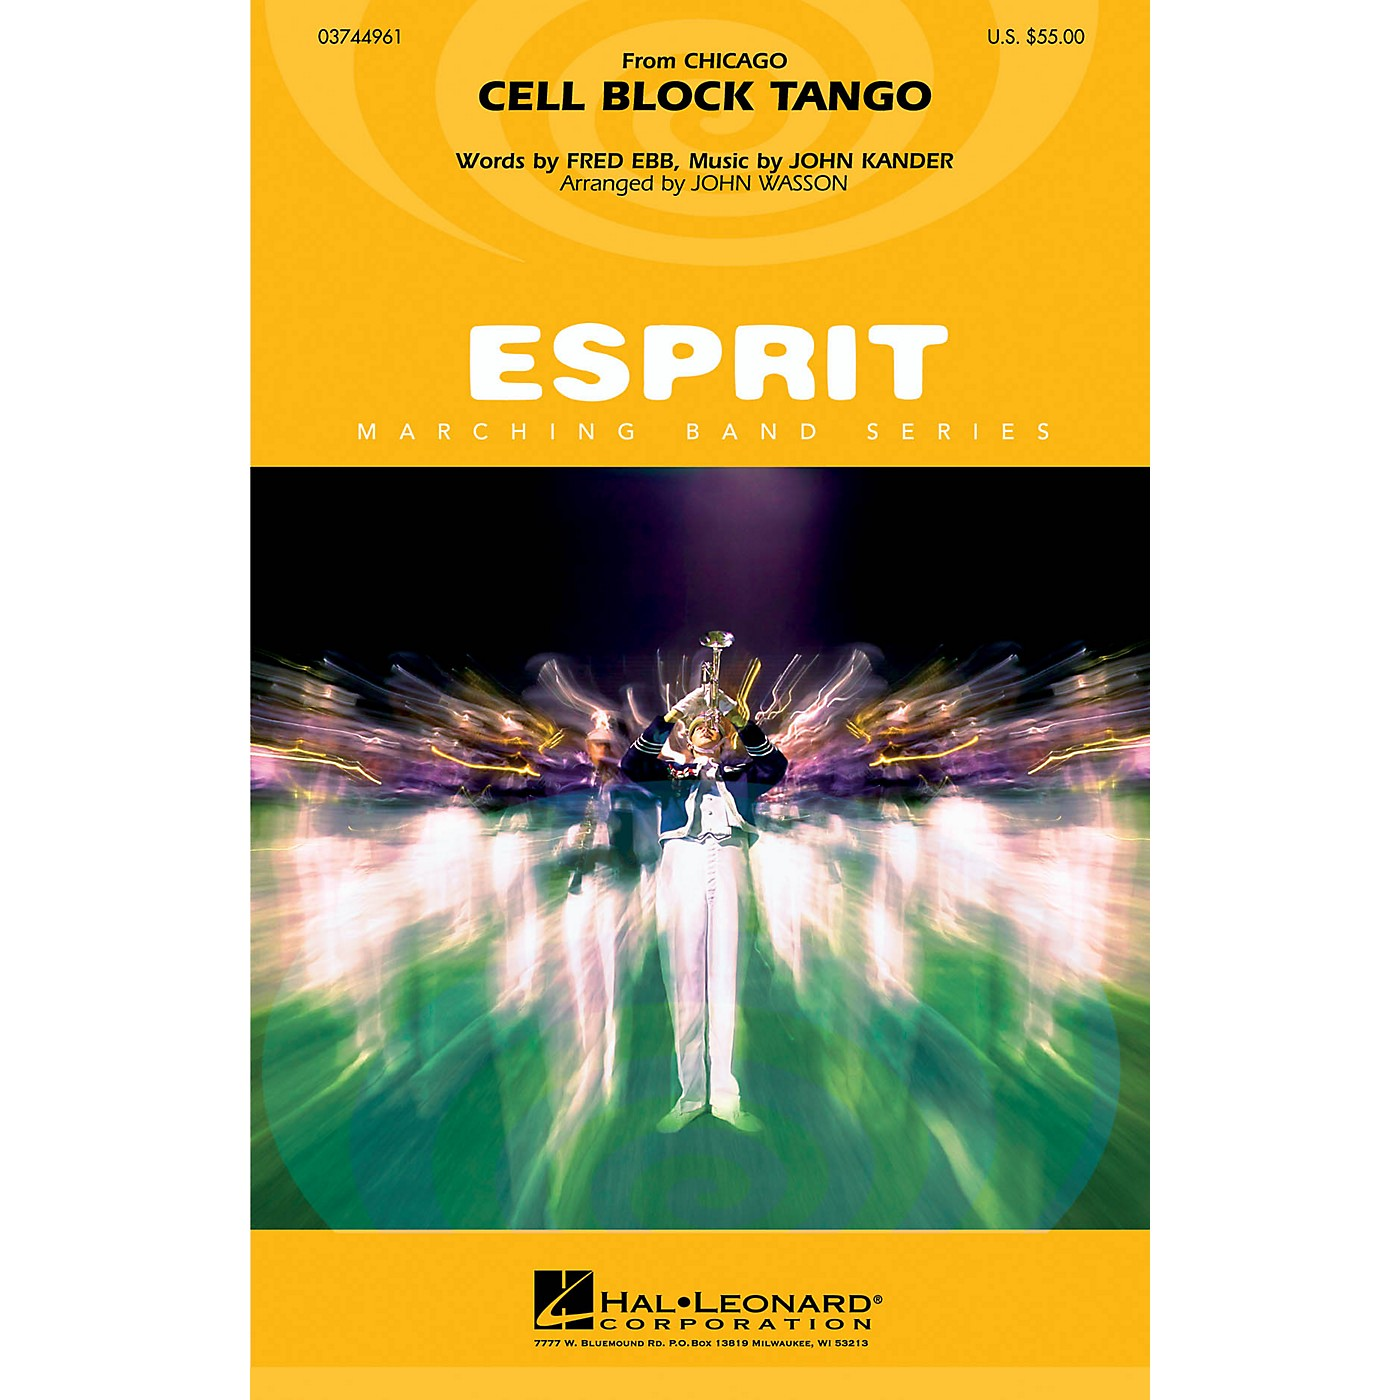 Hal Leonard Cell Block Tango (from Chicago) Marching Band Level 3 Arranged by John Wasson thumbnail